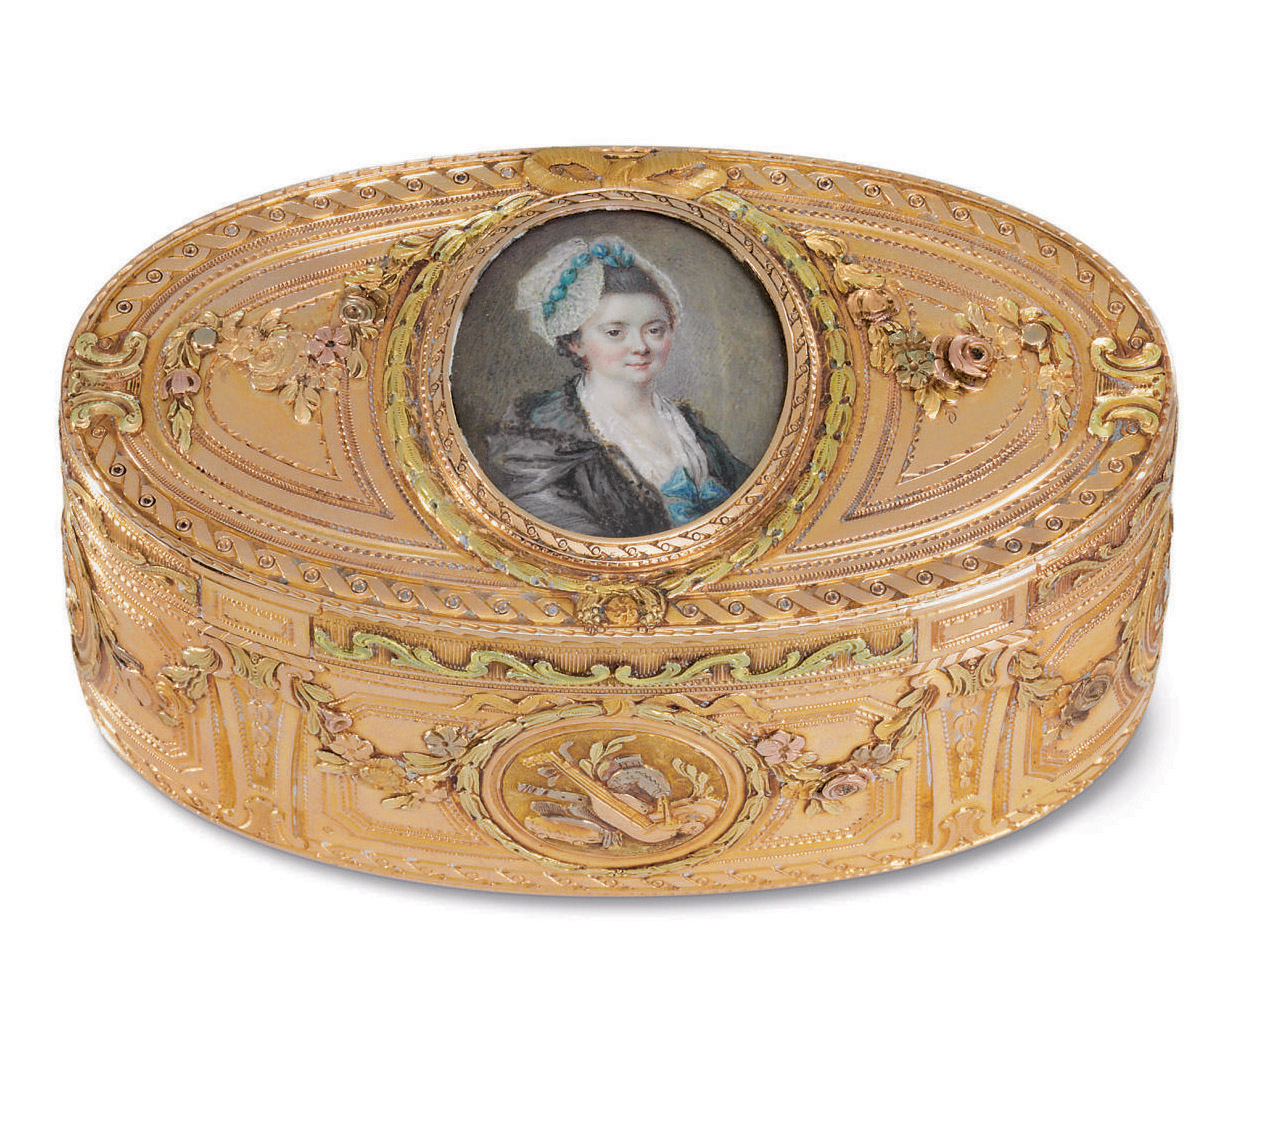 A FRENCH VARI-COLORED GOLD SNUFF BOX WITH PORTRAIT MINIATURE